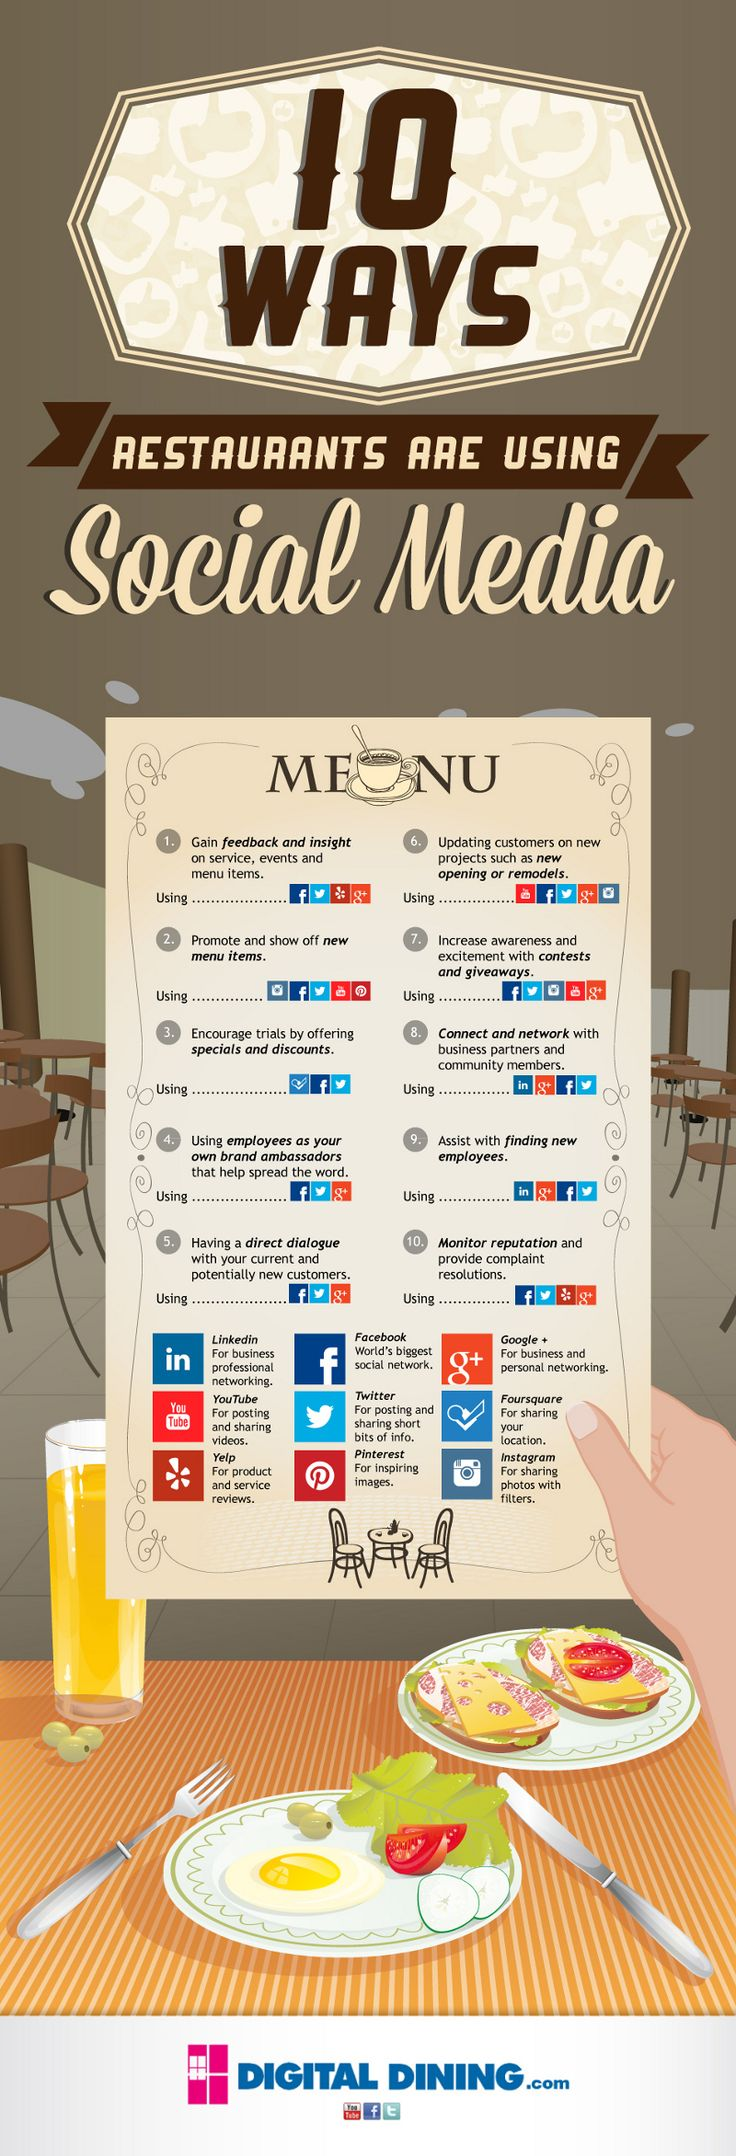 A listing of 10 ways social media is being used my the restaurant industry as a part of their marketing strategy.